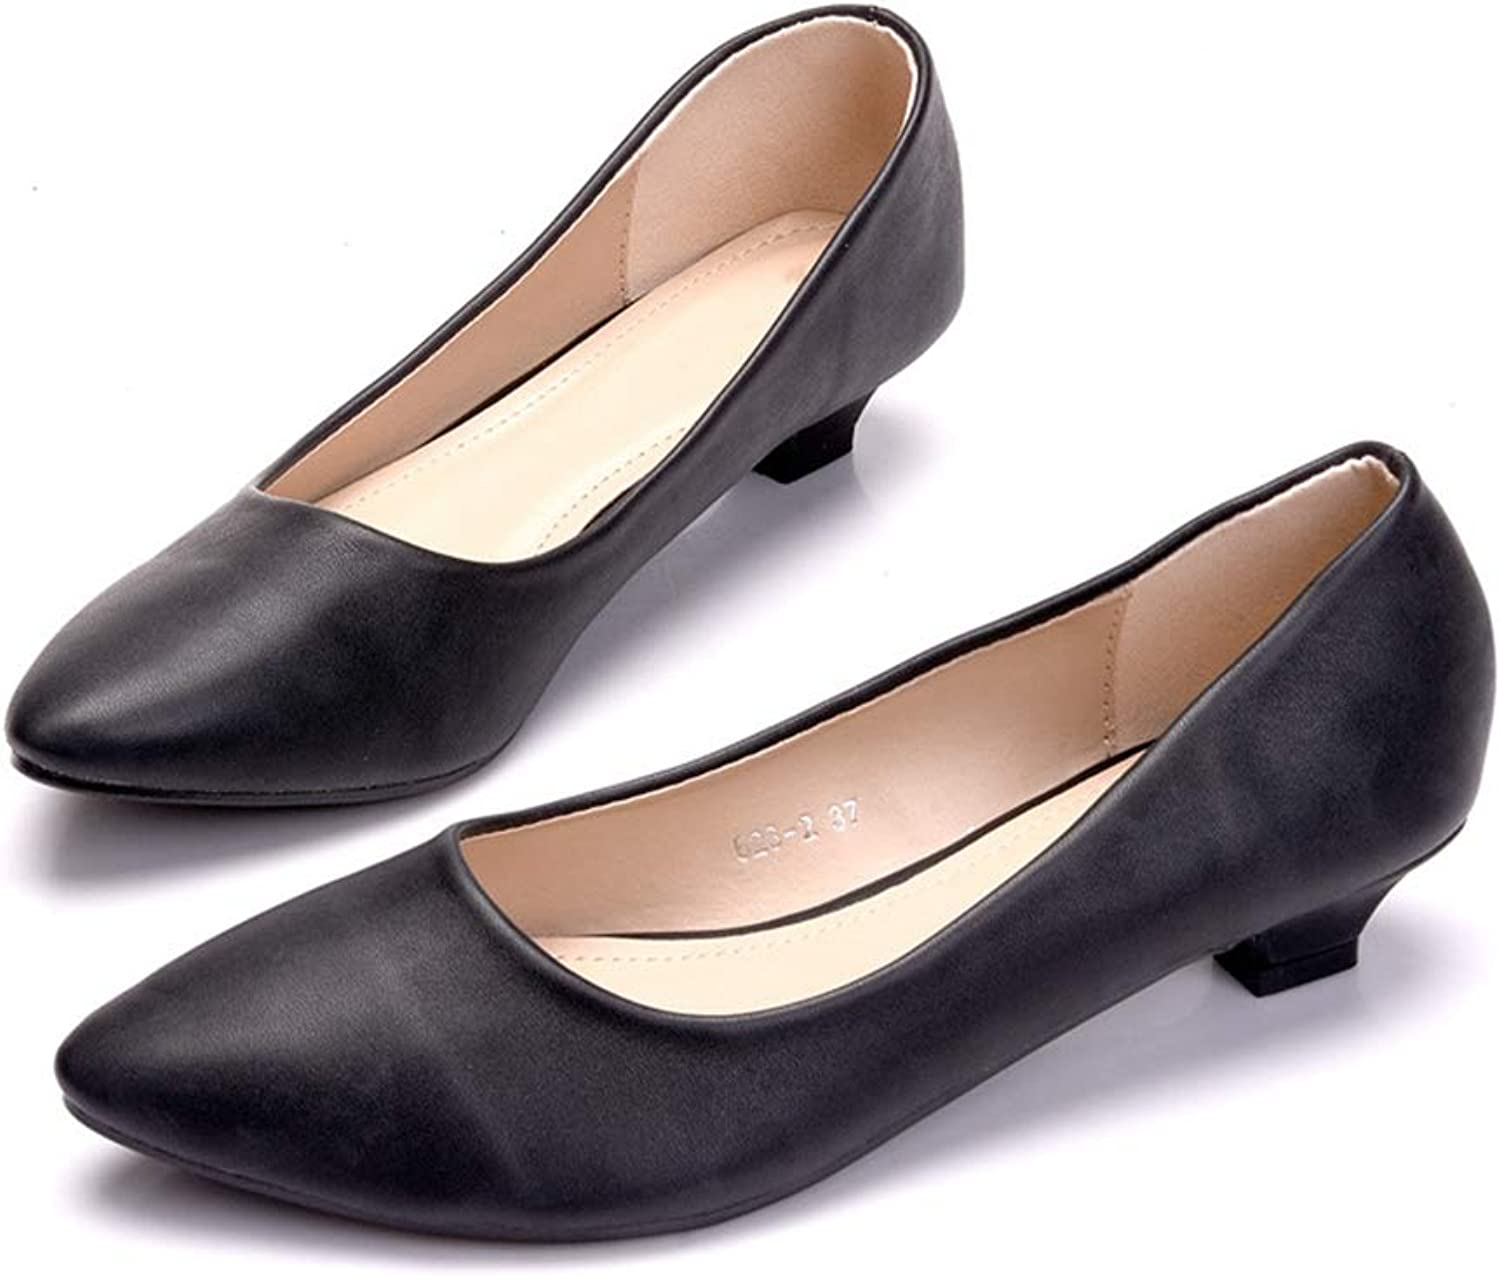 Women Flats shoes Black Pointed Toe Comfort Casual Dress Flats shoes